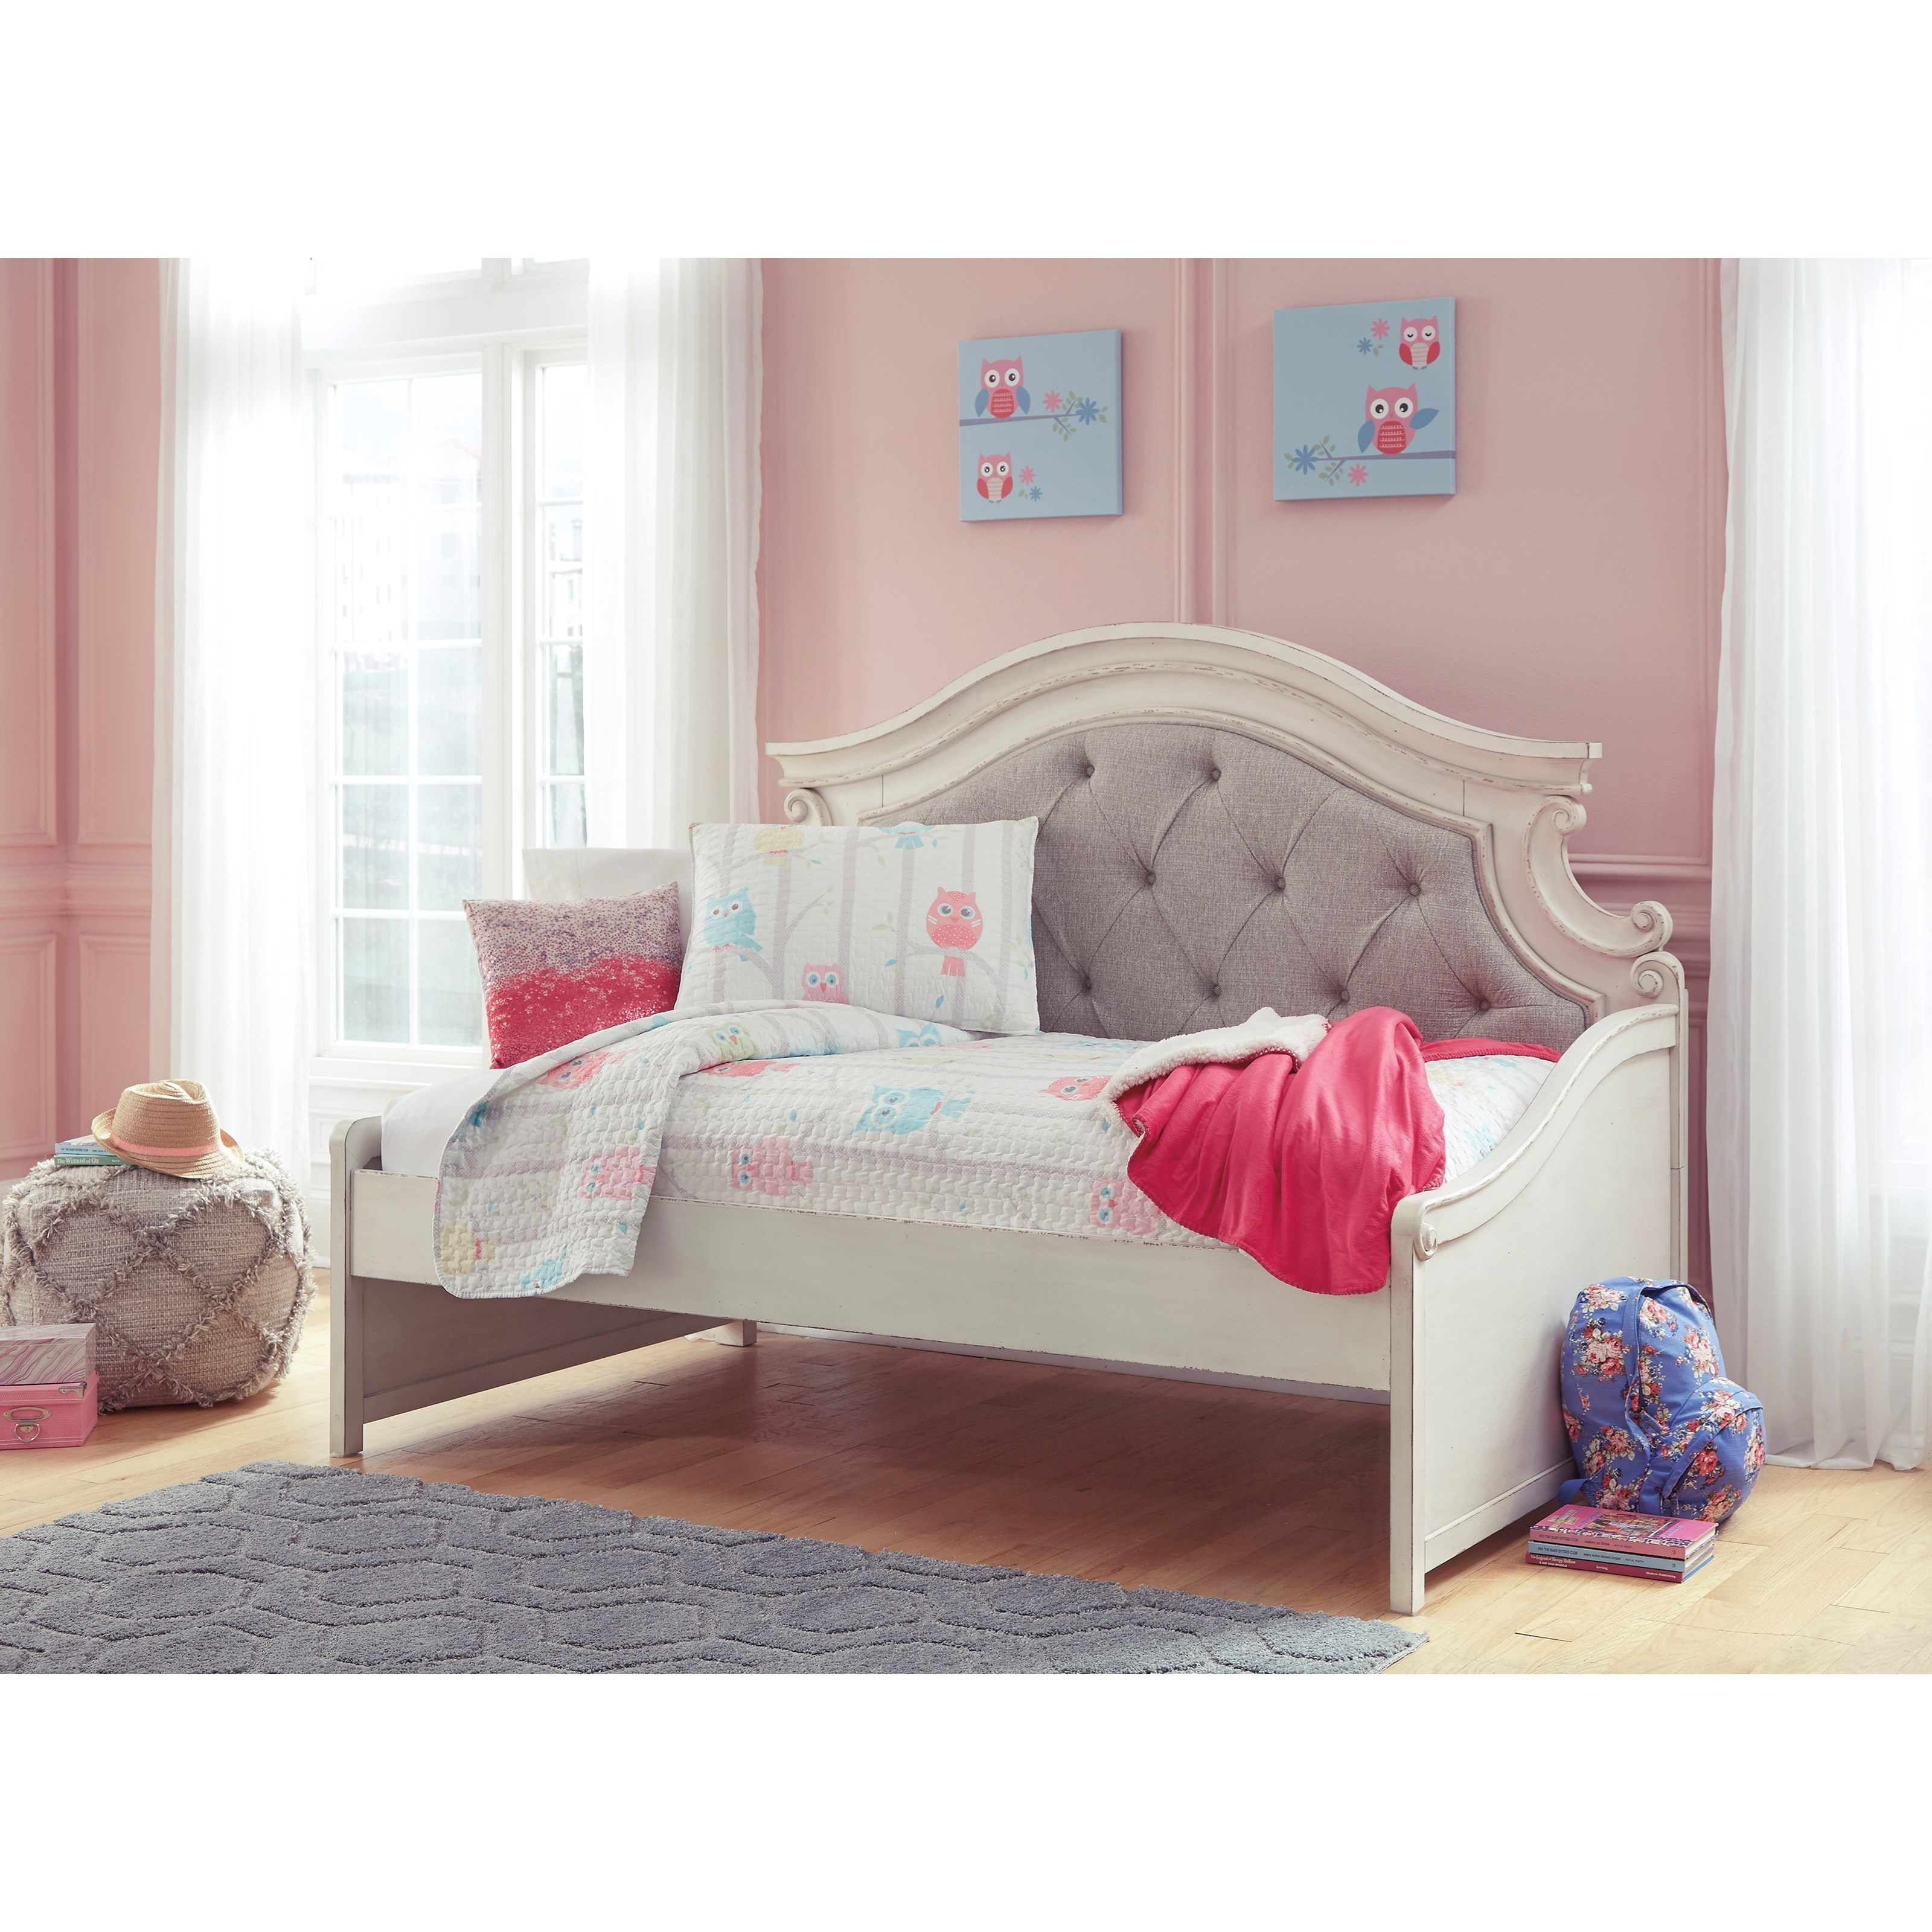 Signature Design By Ashley Realyn Twin Upholstered Day Bed Royal Furniture Daybeds